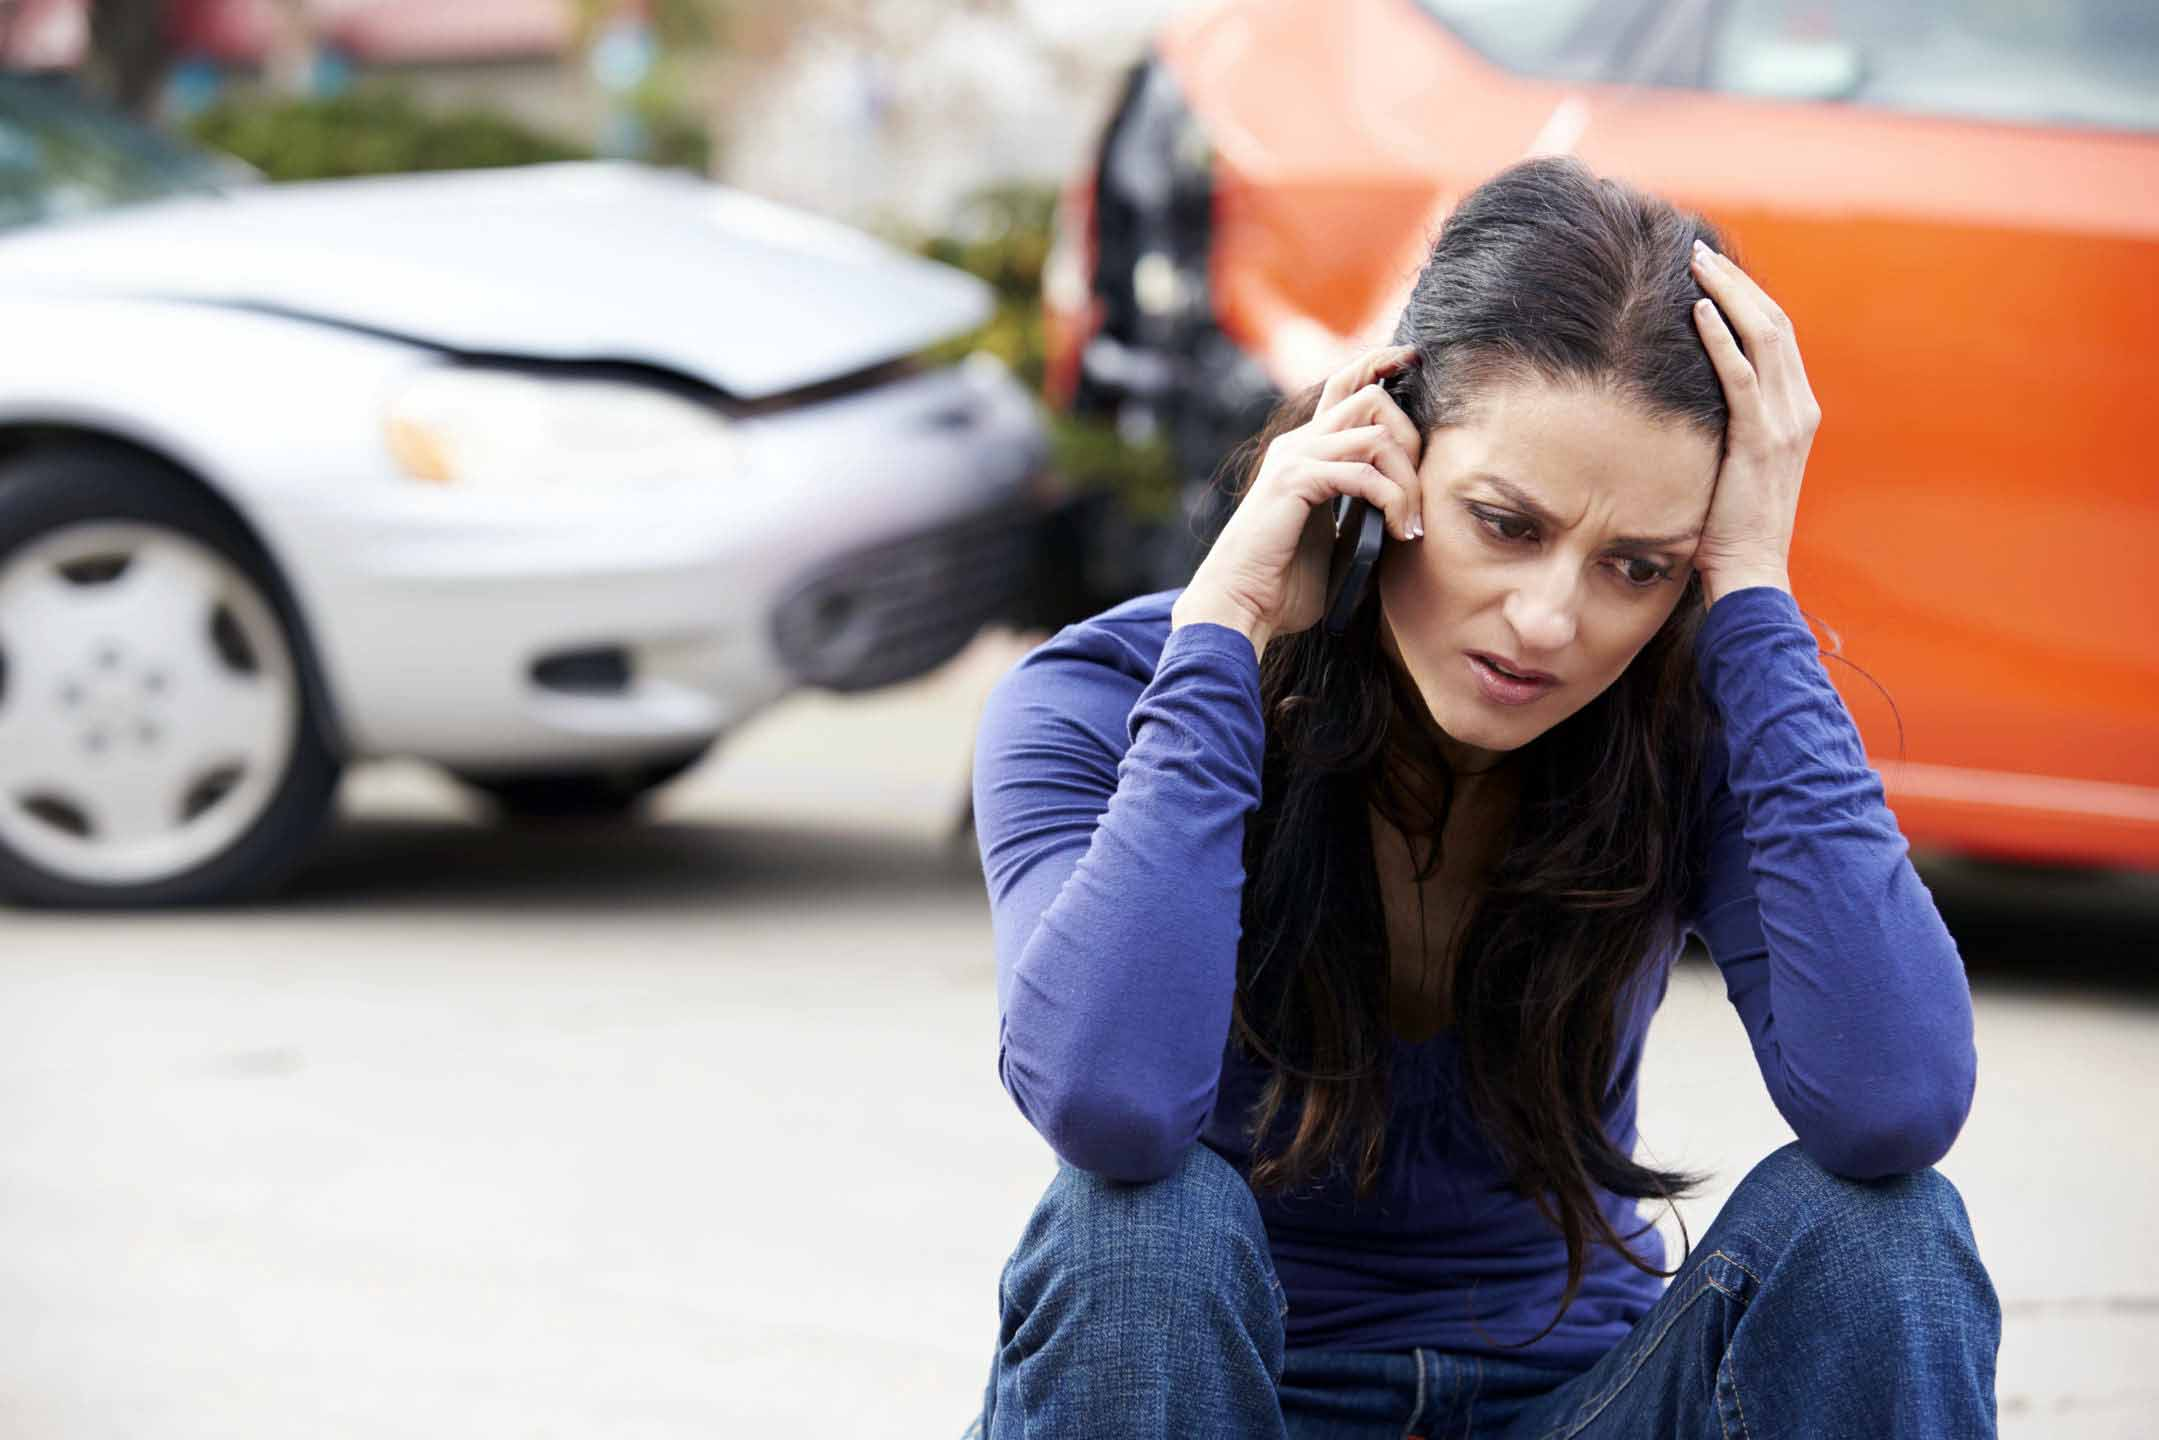 Personal Injury Accident Law Firm East Irvine, CA